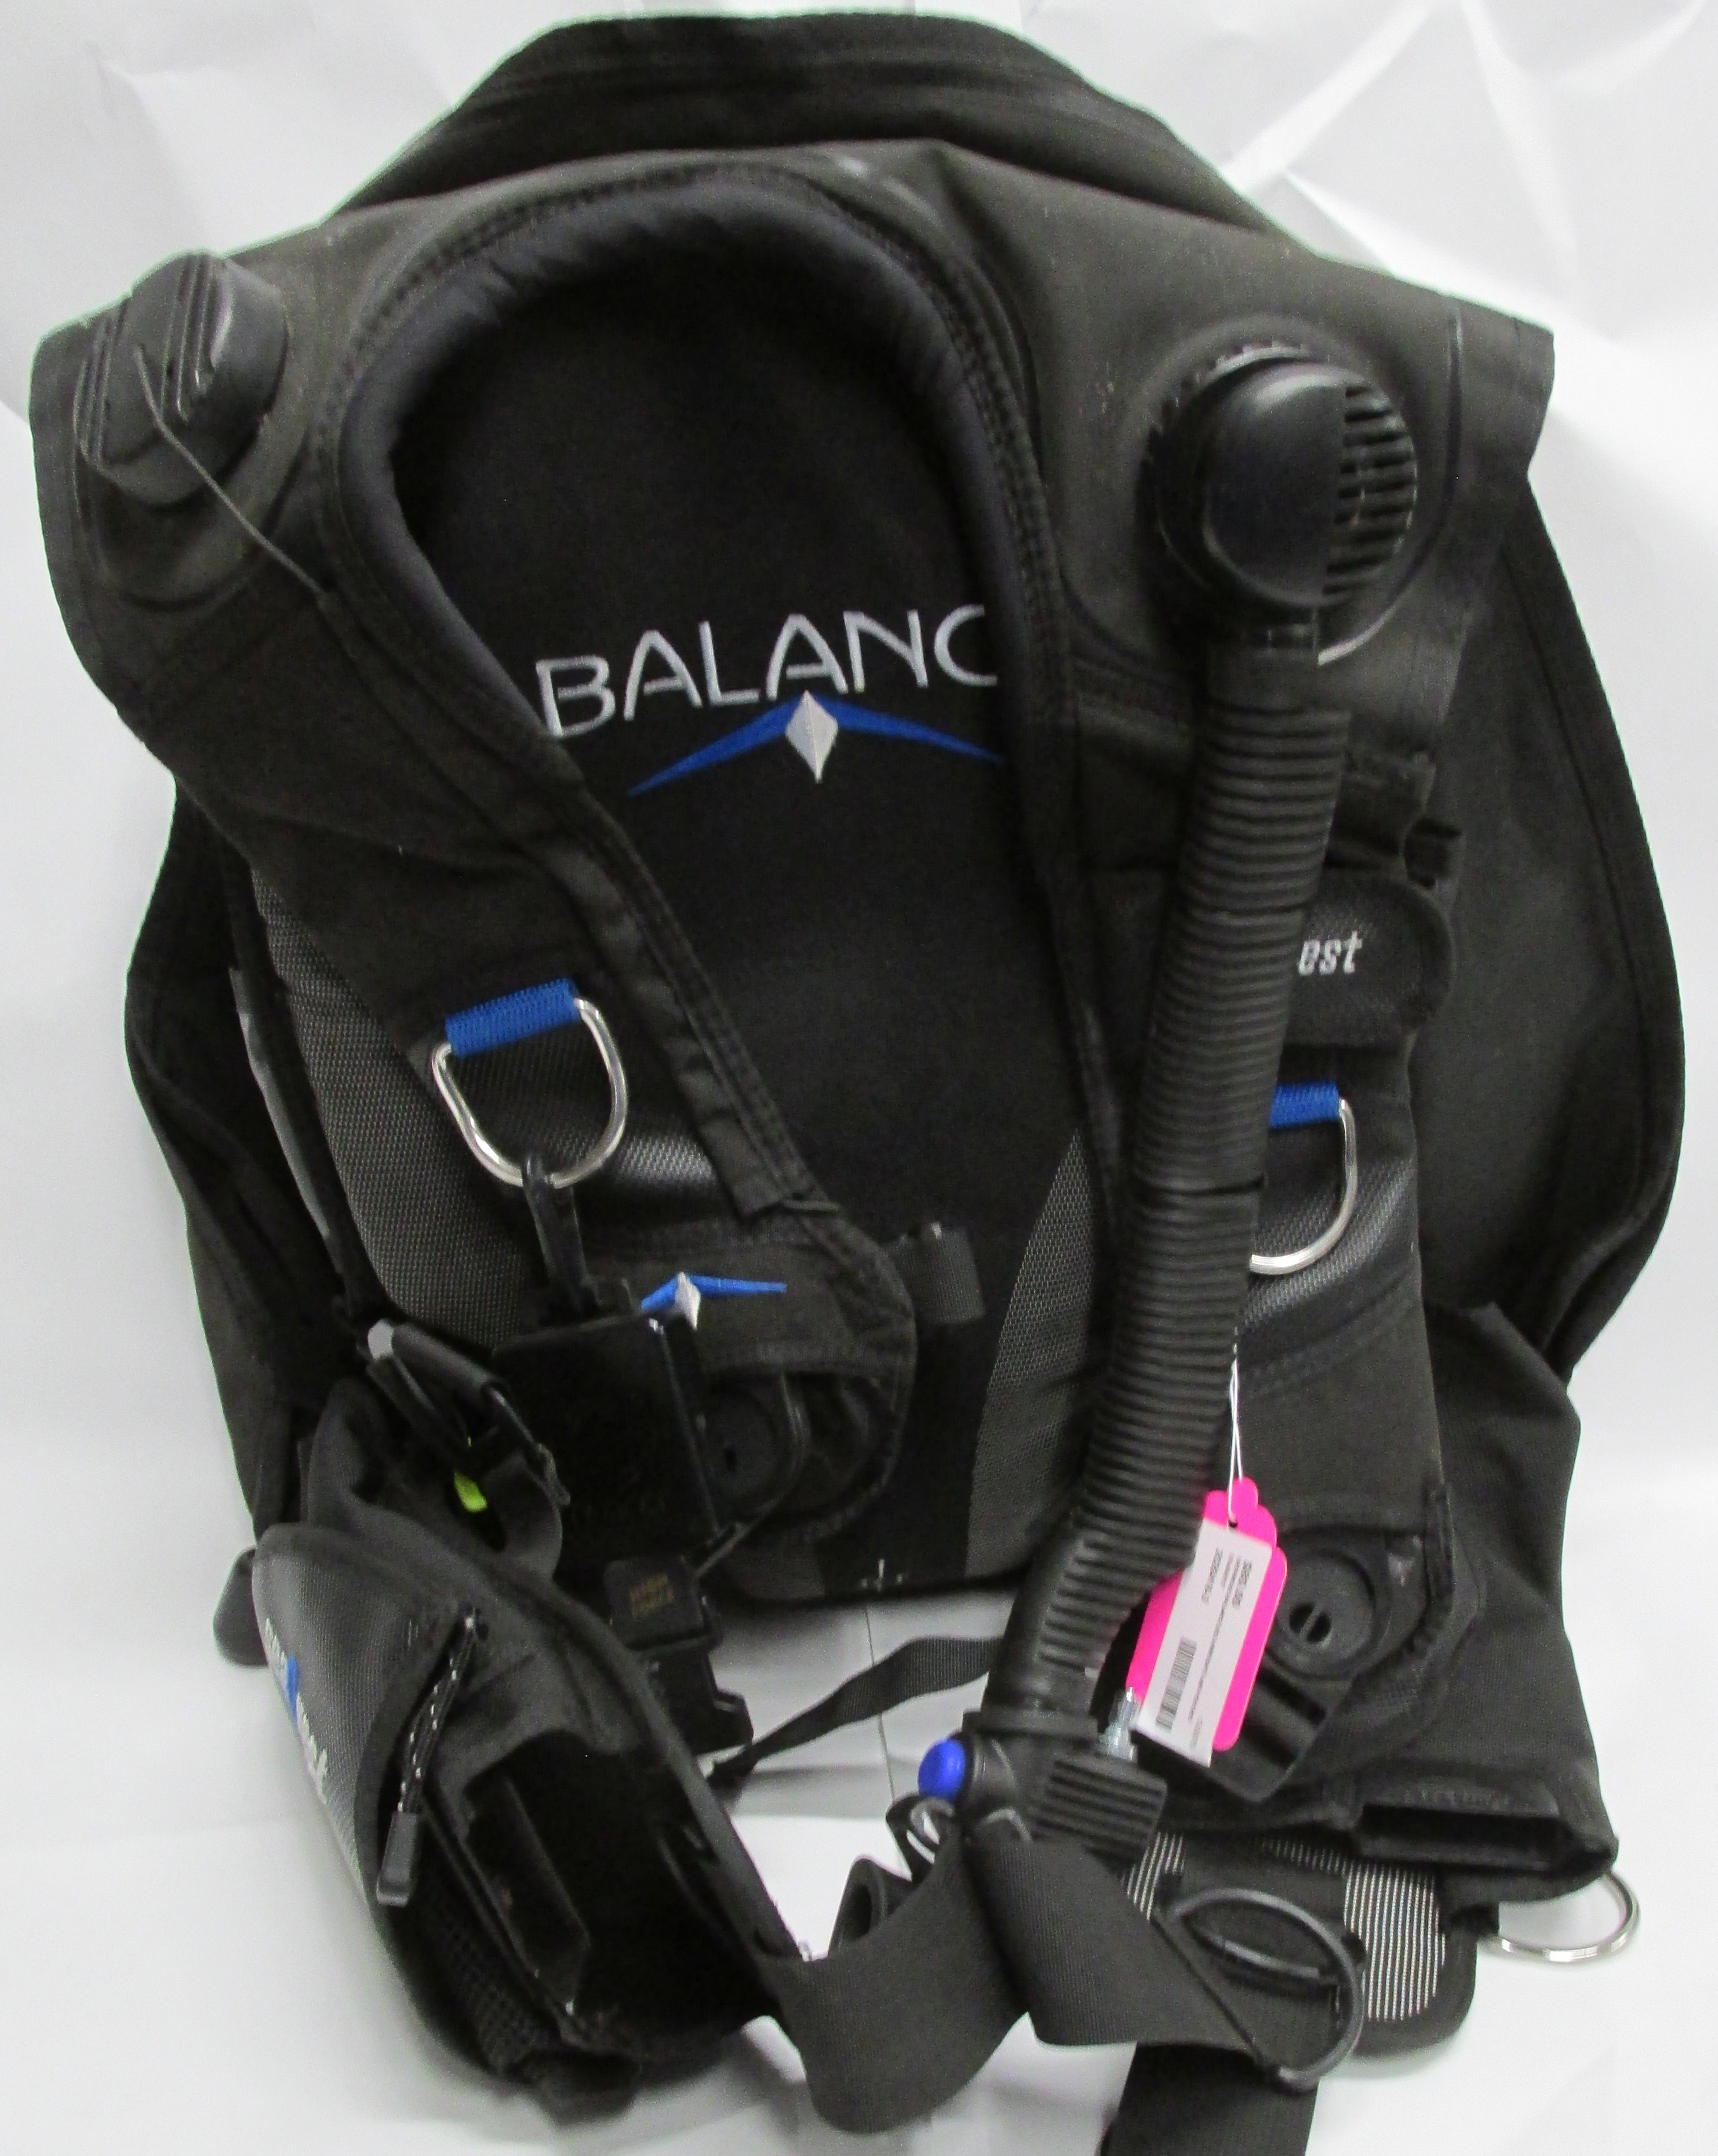 Sea Quest Balance BCD Buoyancy Compensator with Pouches and Aqua Lung Carry Bag